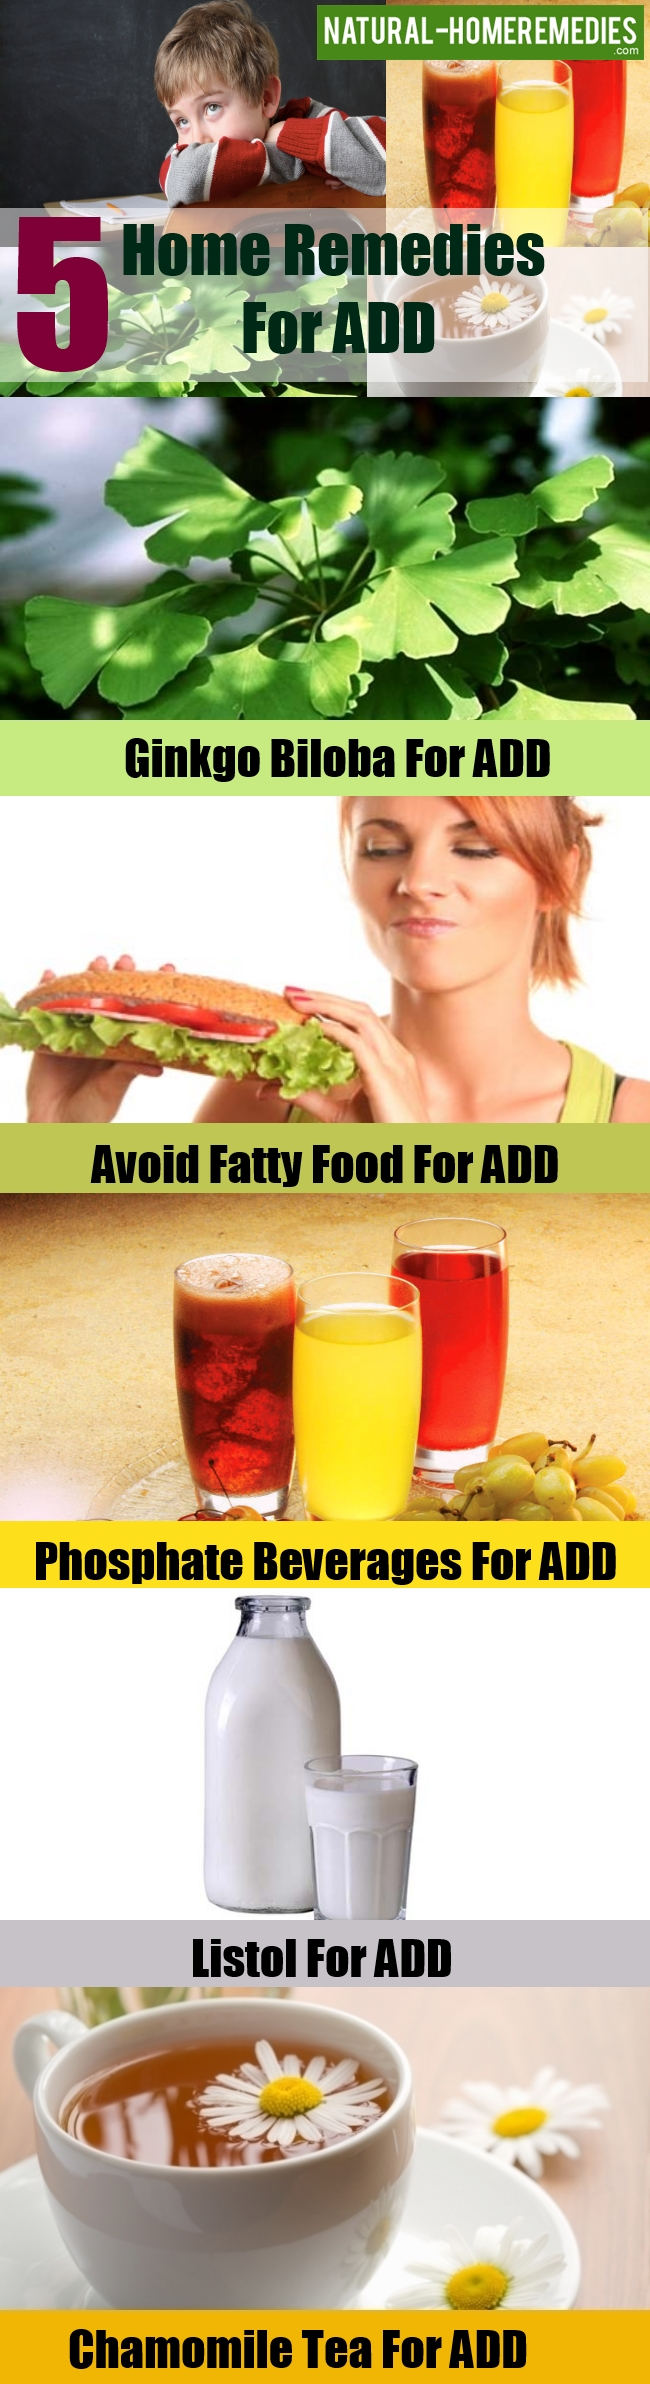 Home Remedies For ADD